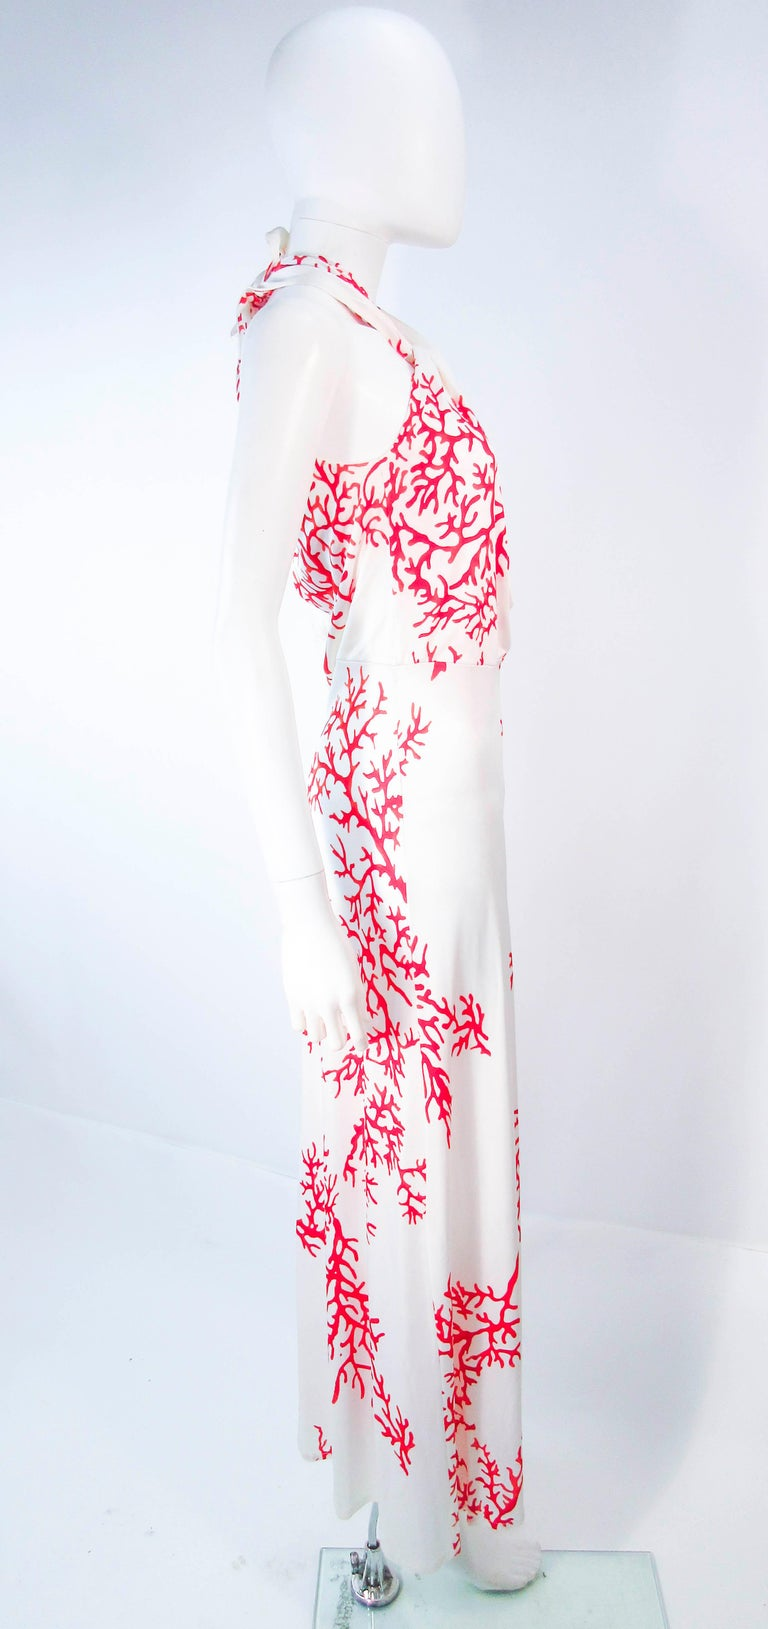 VALENTINO White with Red Coral Pattern Criss Cross Jersey Halter Dress Size 42 For Sale 3